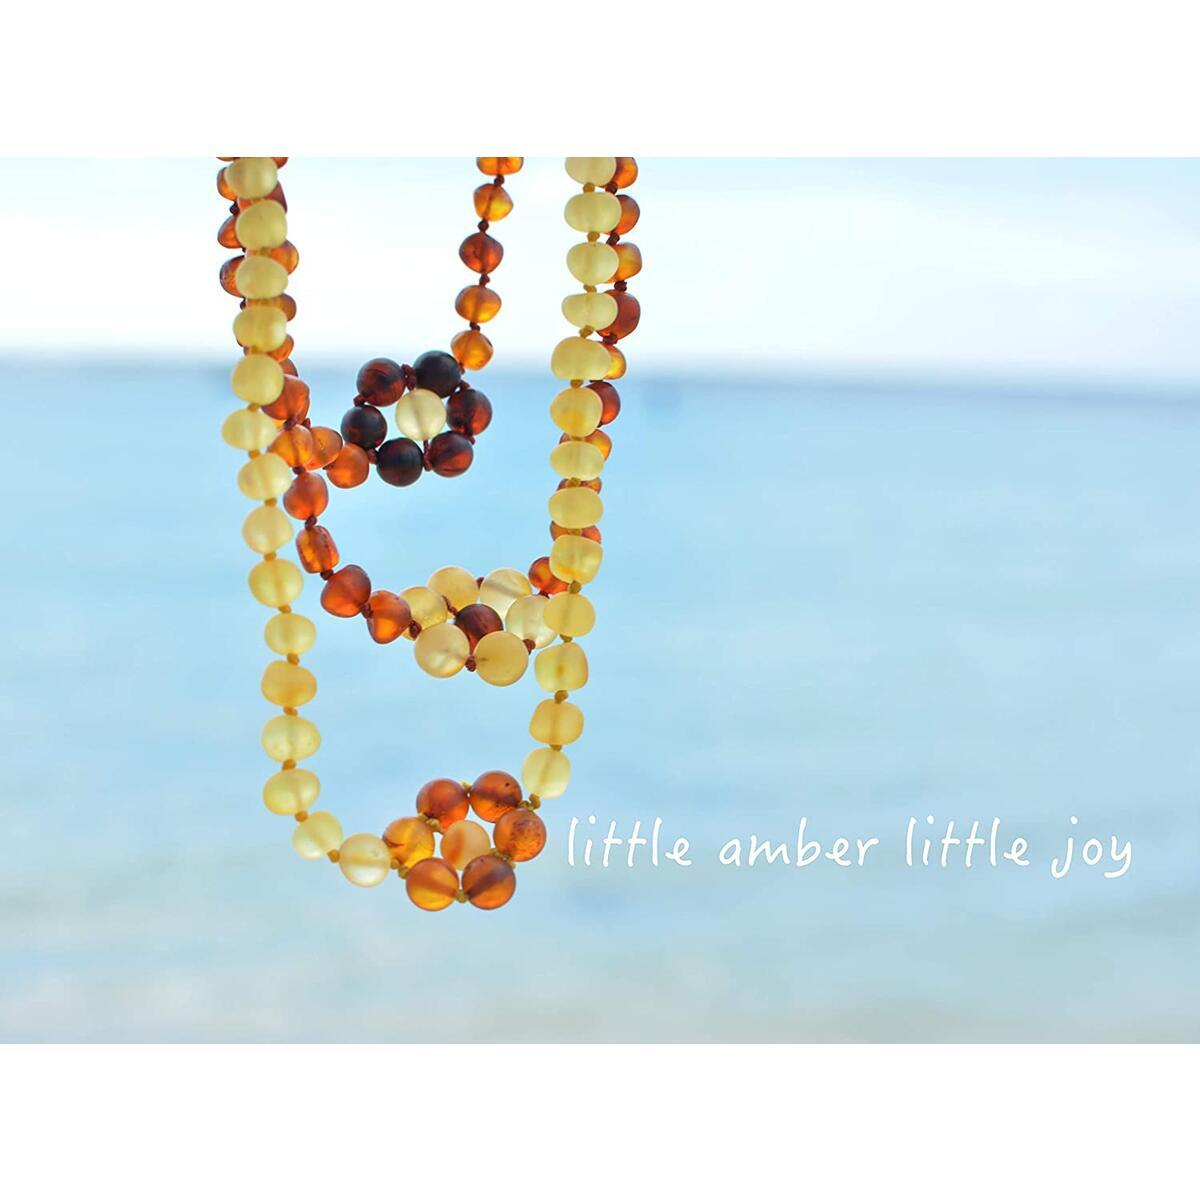 Amber Land Frosted Genuine Baltic Amber Necklace Frosted for Unisex 【12.5 inch】Certificated Natural Baltic Amber (Cognac Flower+ Lemon Necklace)